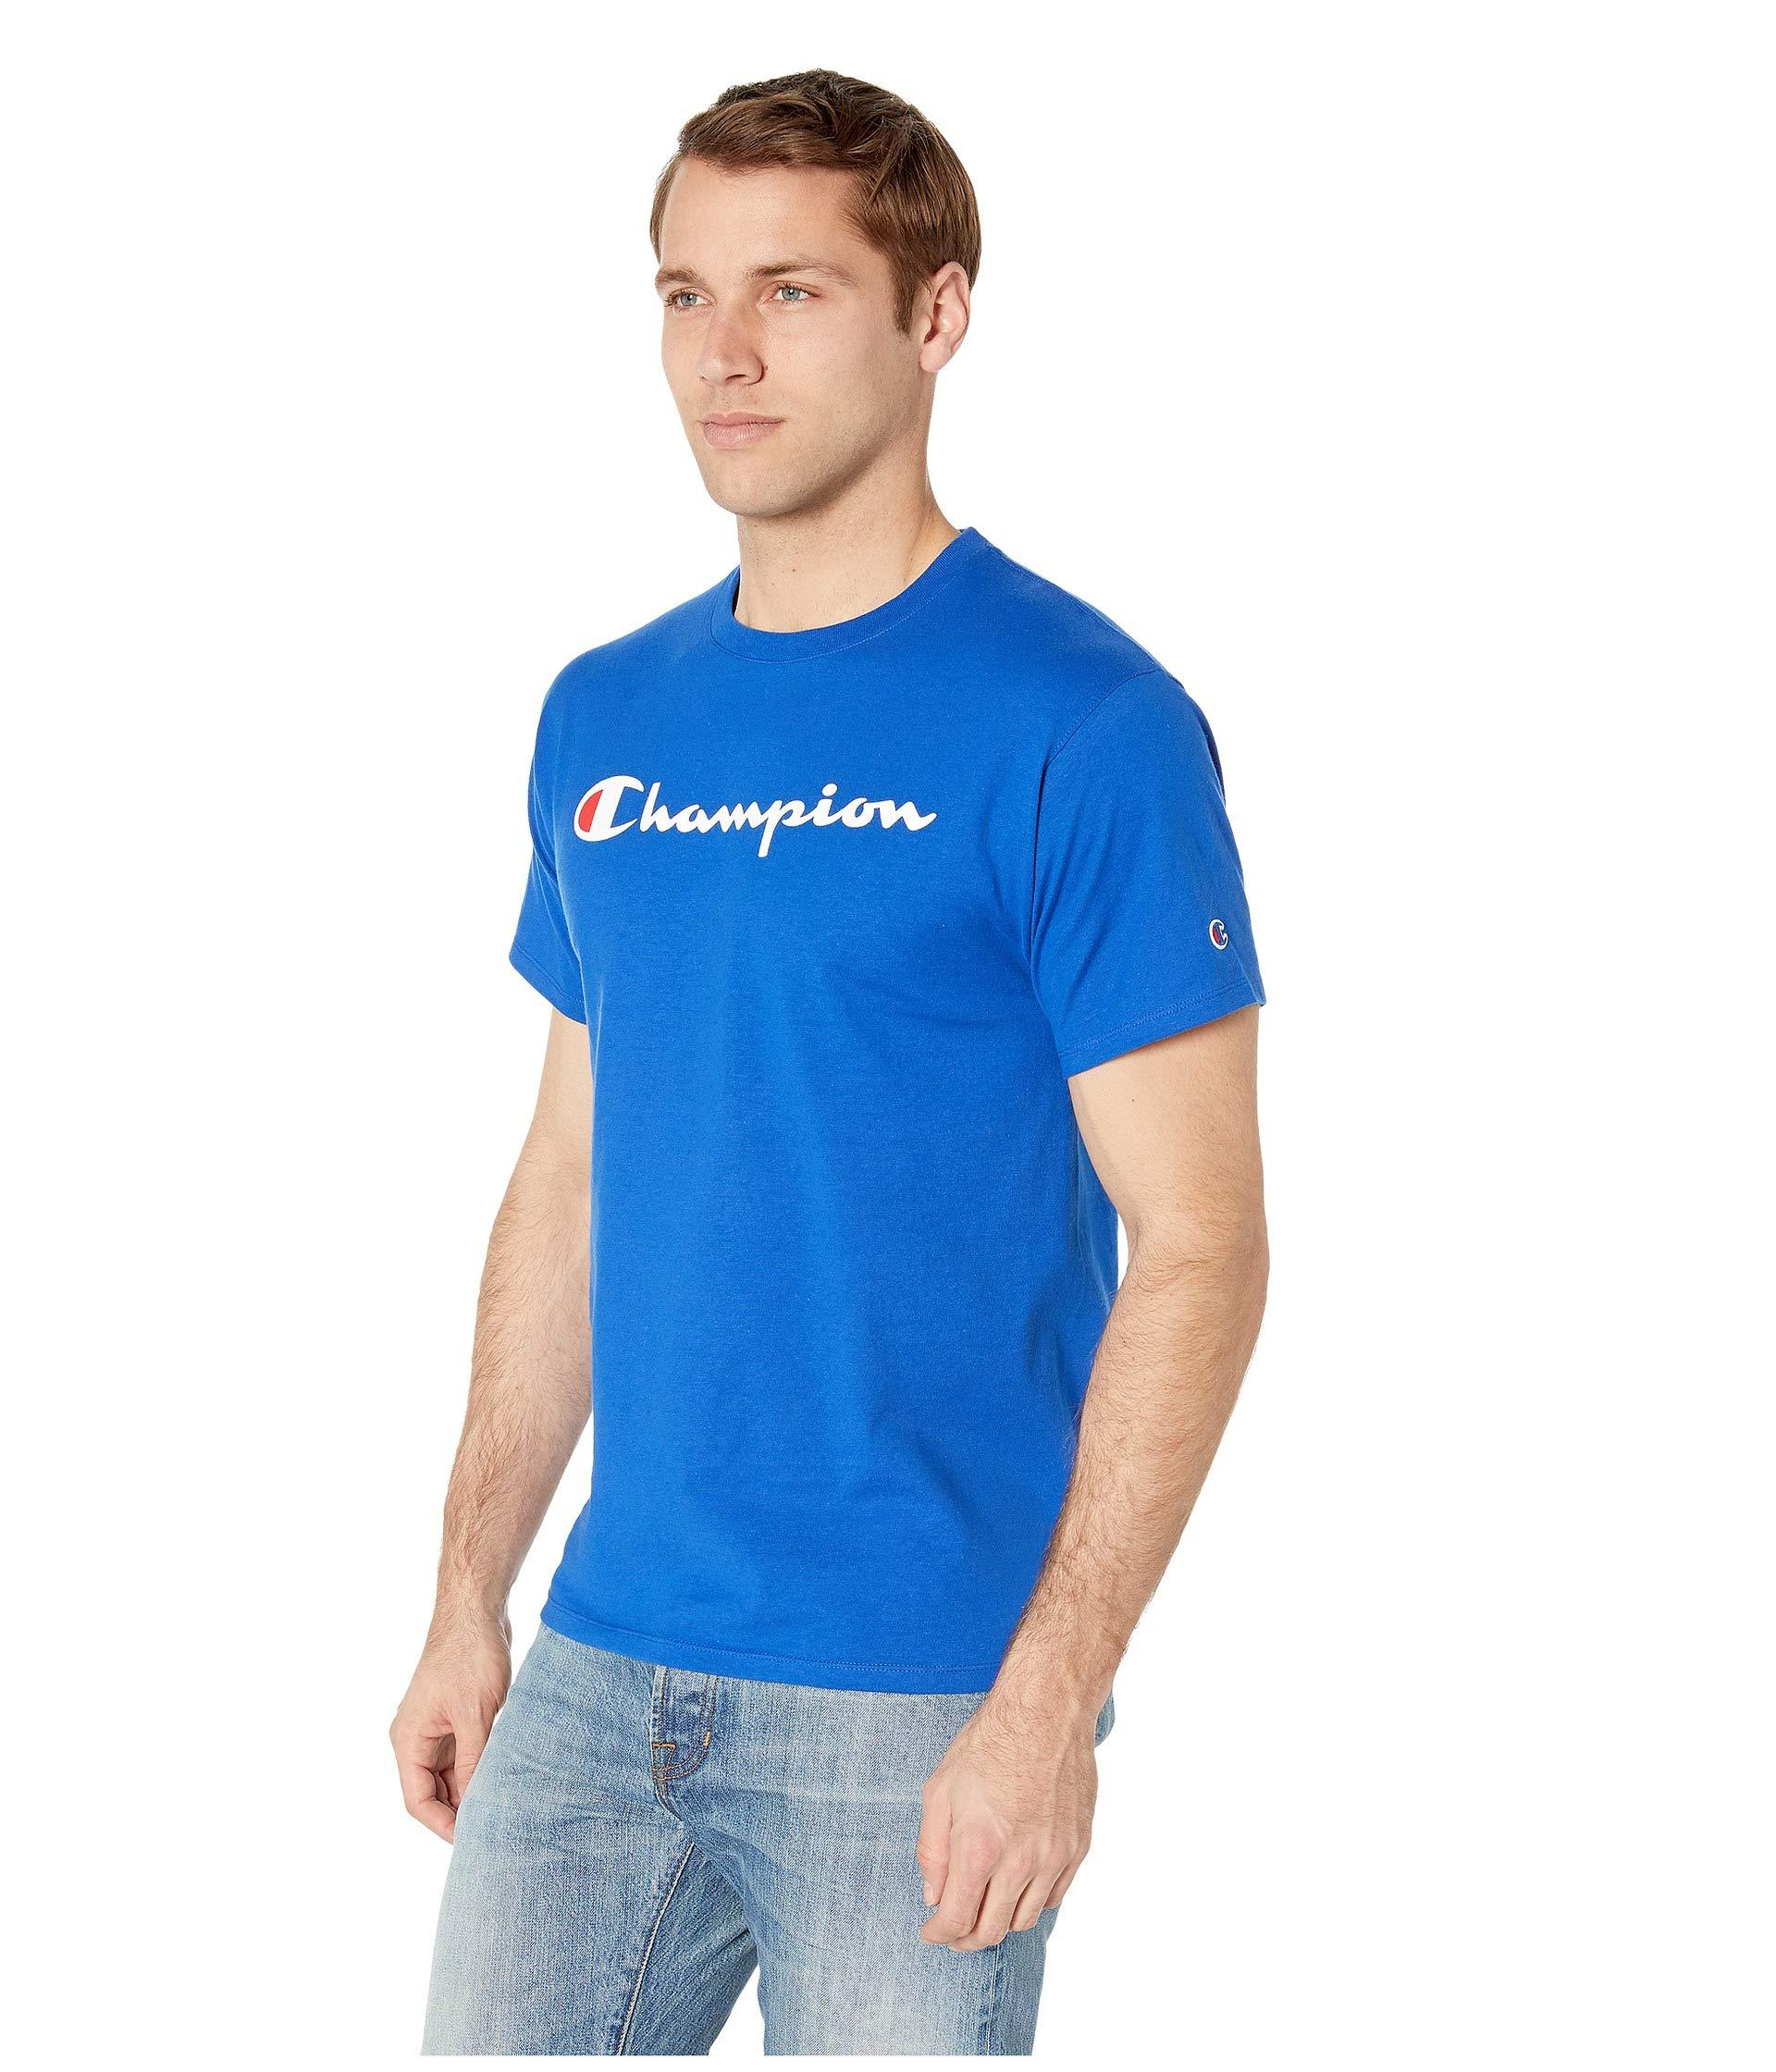 f238e1d5 Lyst - Champion Classic Jersey Graphic Tee (black) Men's T Shirt in Blue  for Men